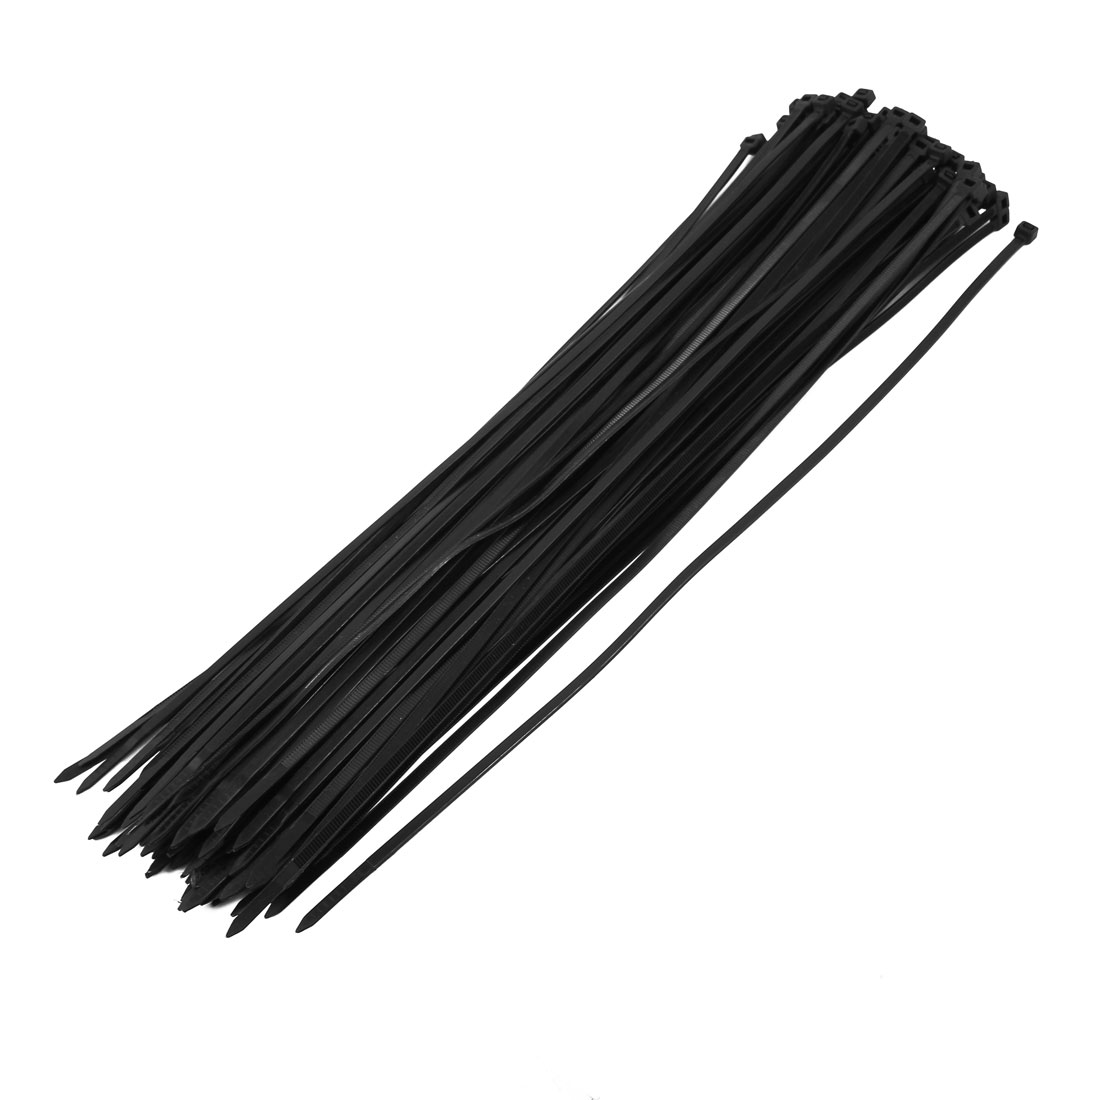 5mm x 400mm Nylon Self Locking Cable Zip Ties Fastener Black 100pcs